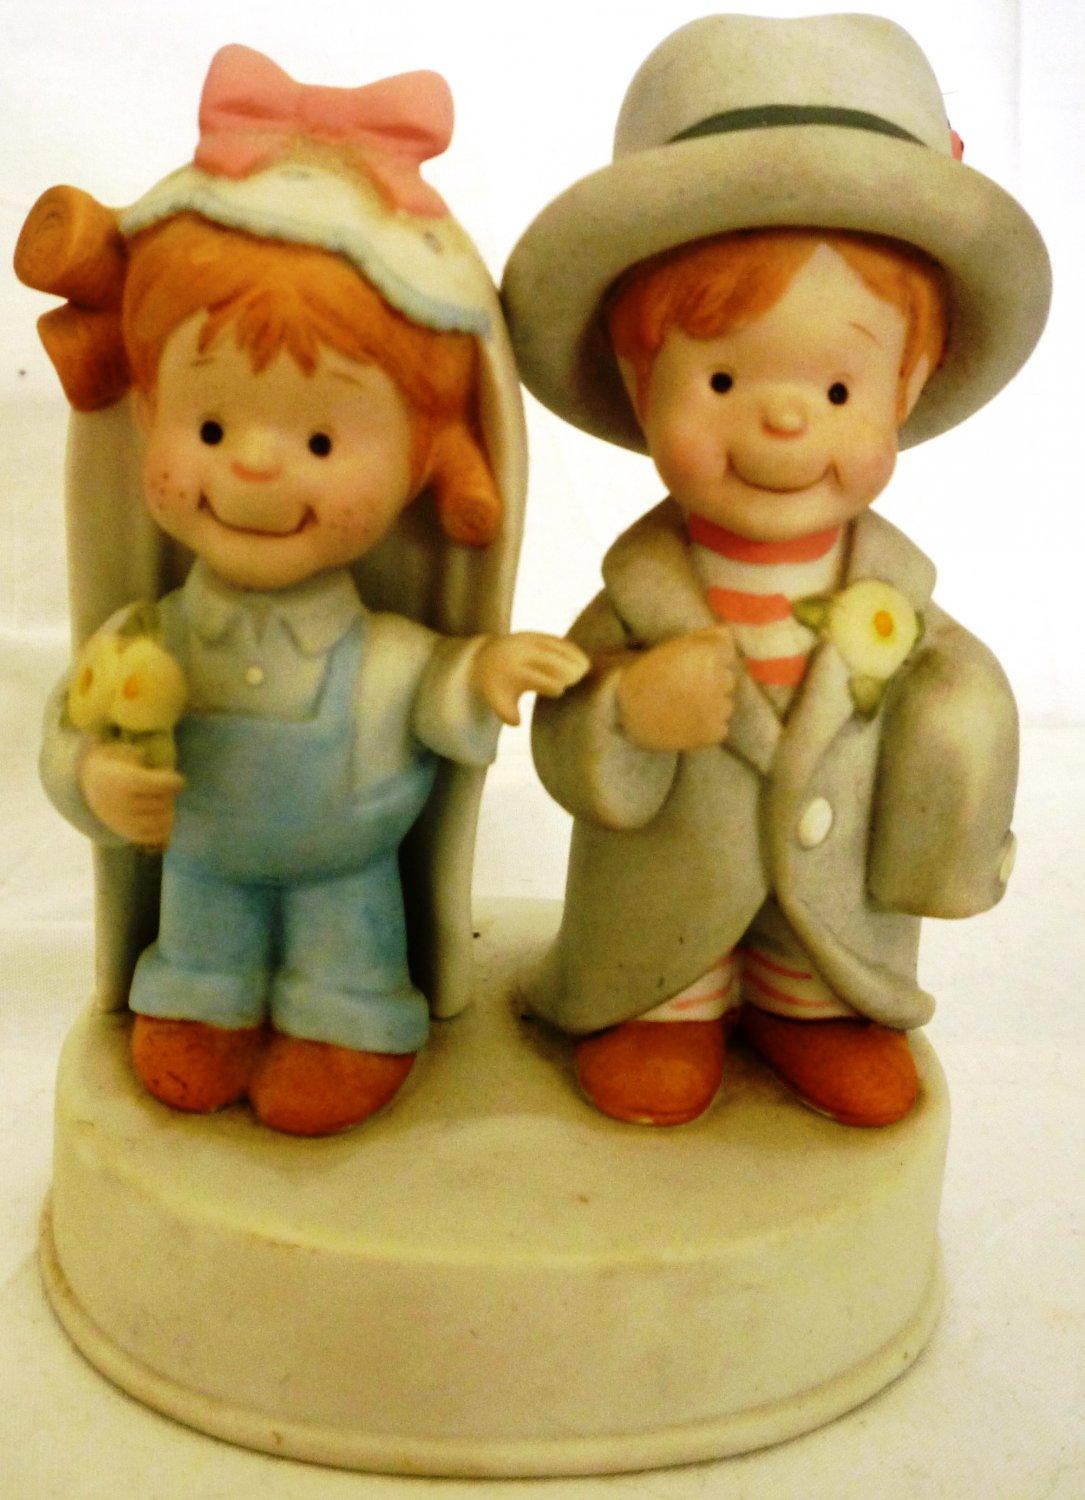 CHARMING PORCELAIN SARA BLUEJEANS HERE COMES THE BRIDE MUSIC BOX 1982 GEORGE